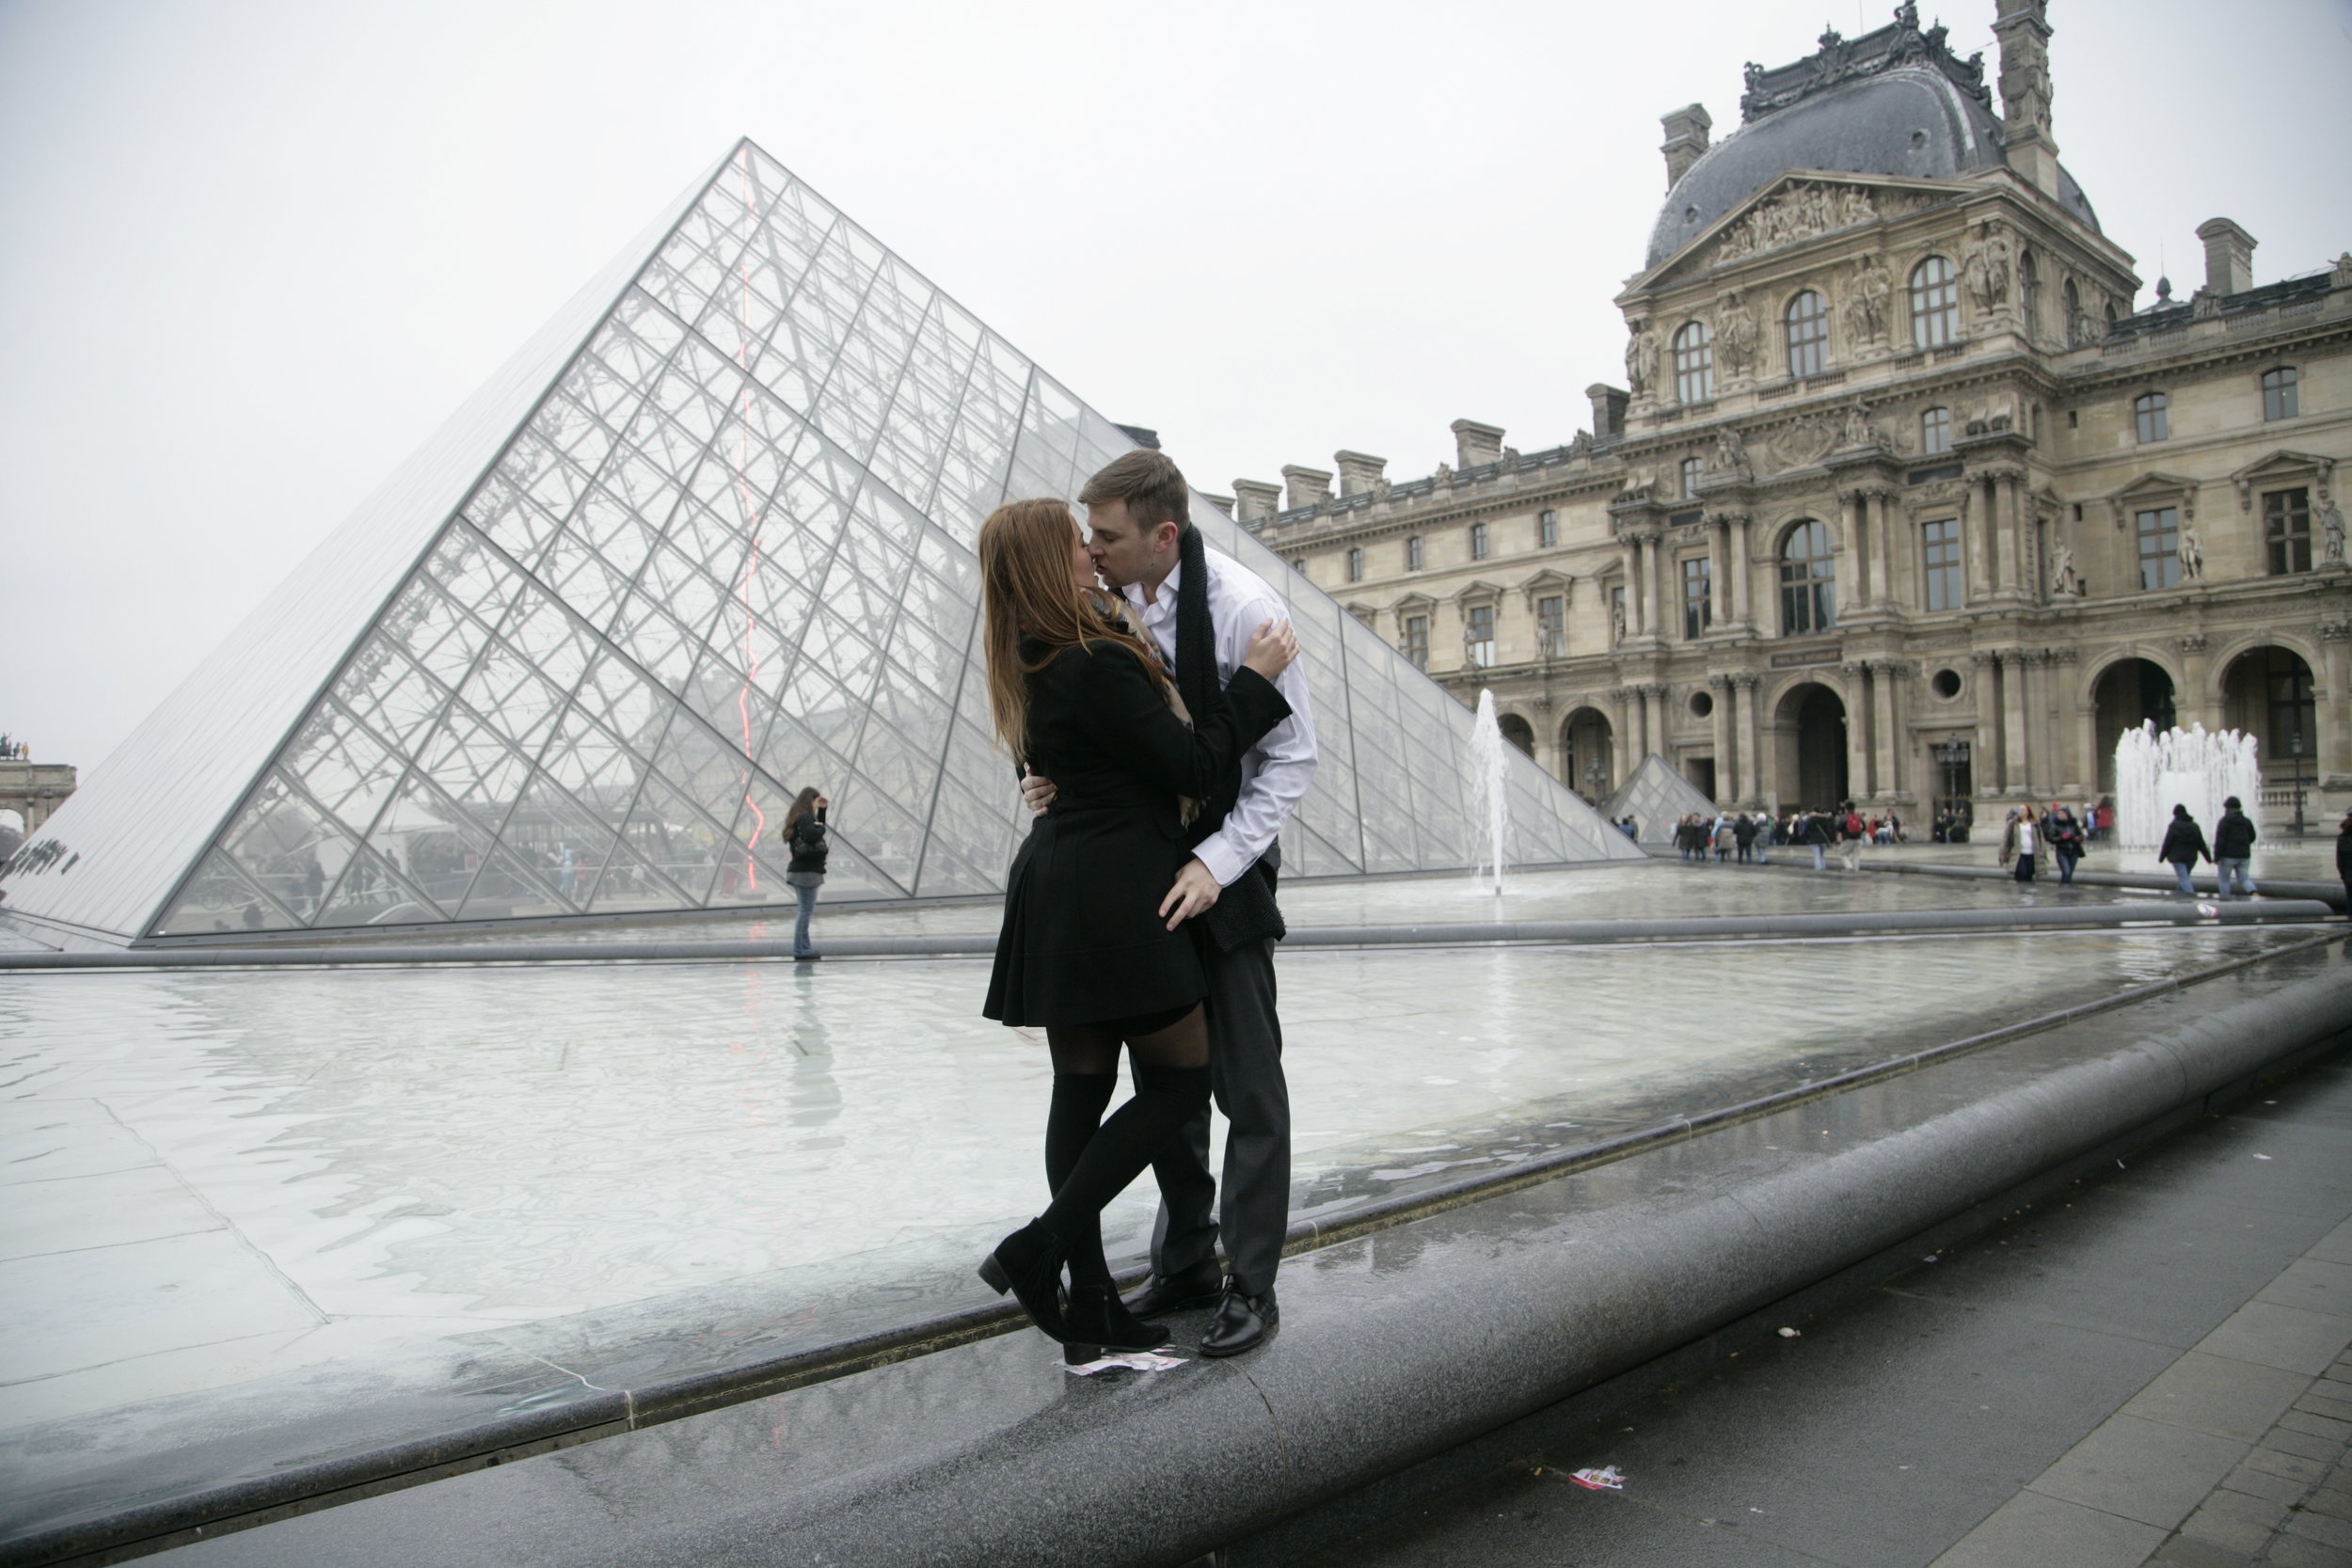 Louvre Picture Ideas - Best Way to get Photos with the Louvre while in Paris | www.coupleinthekitchen.com